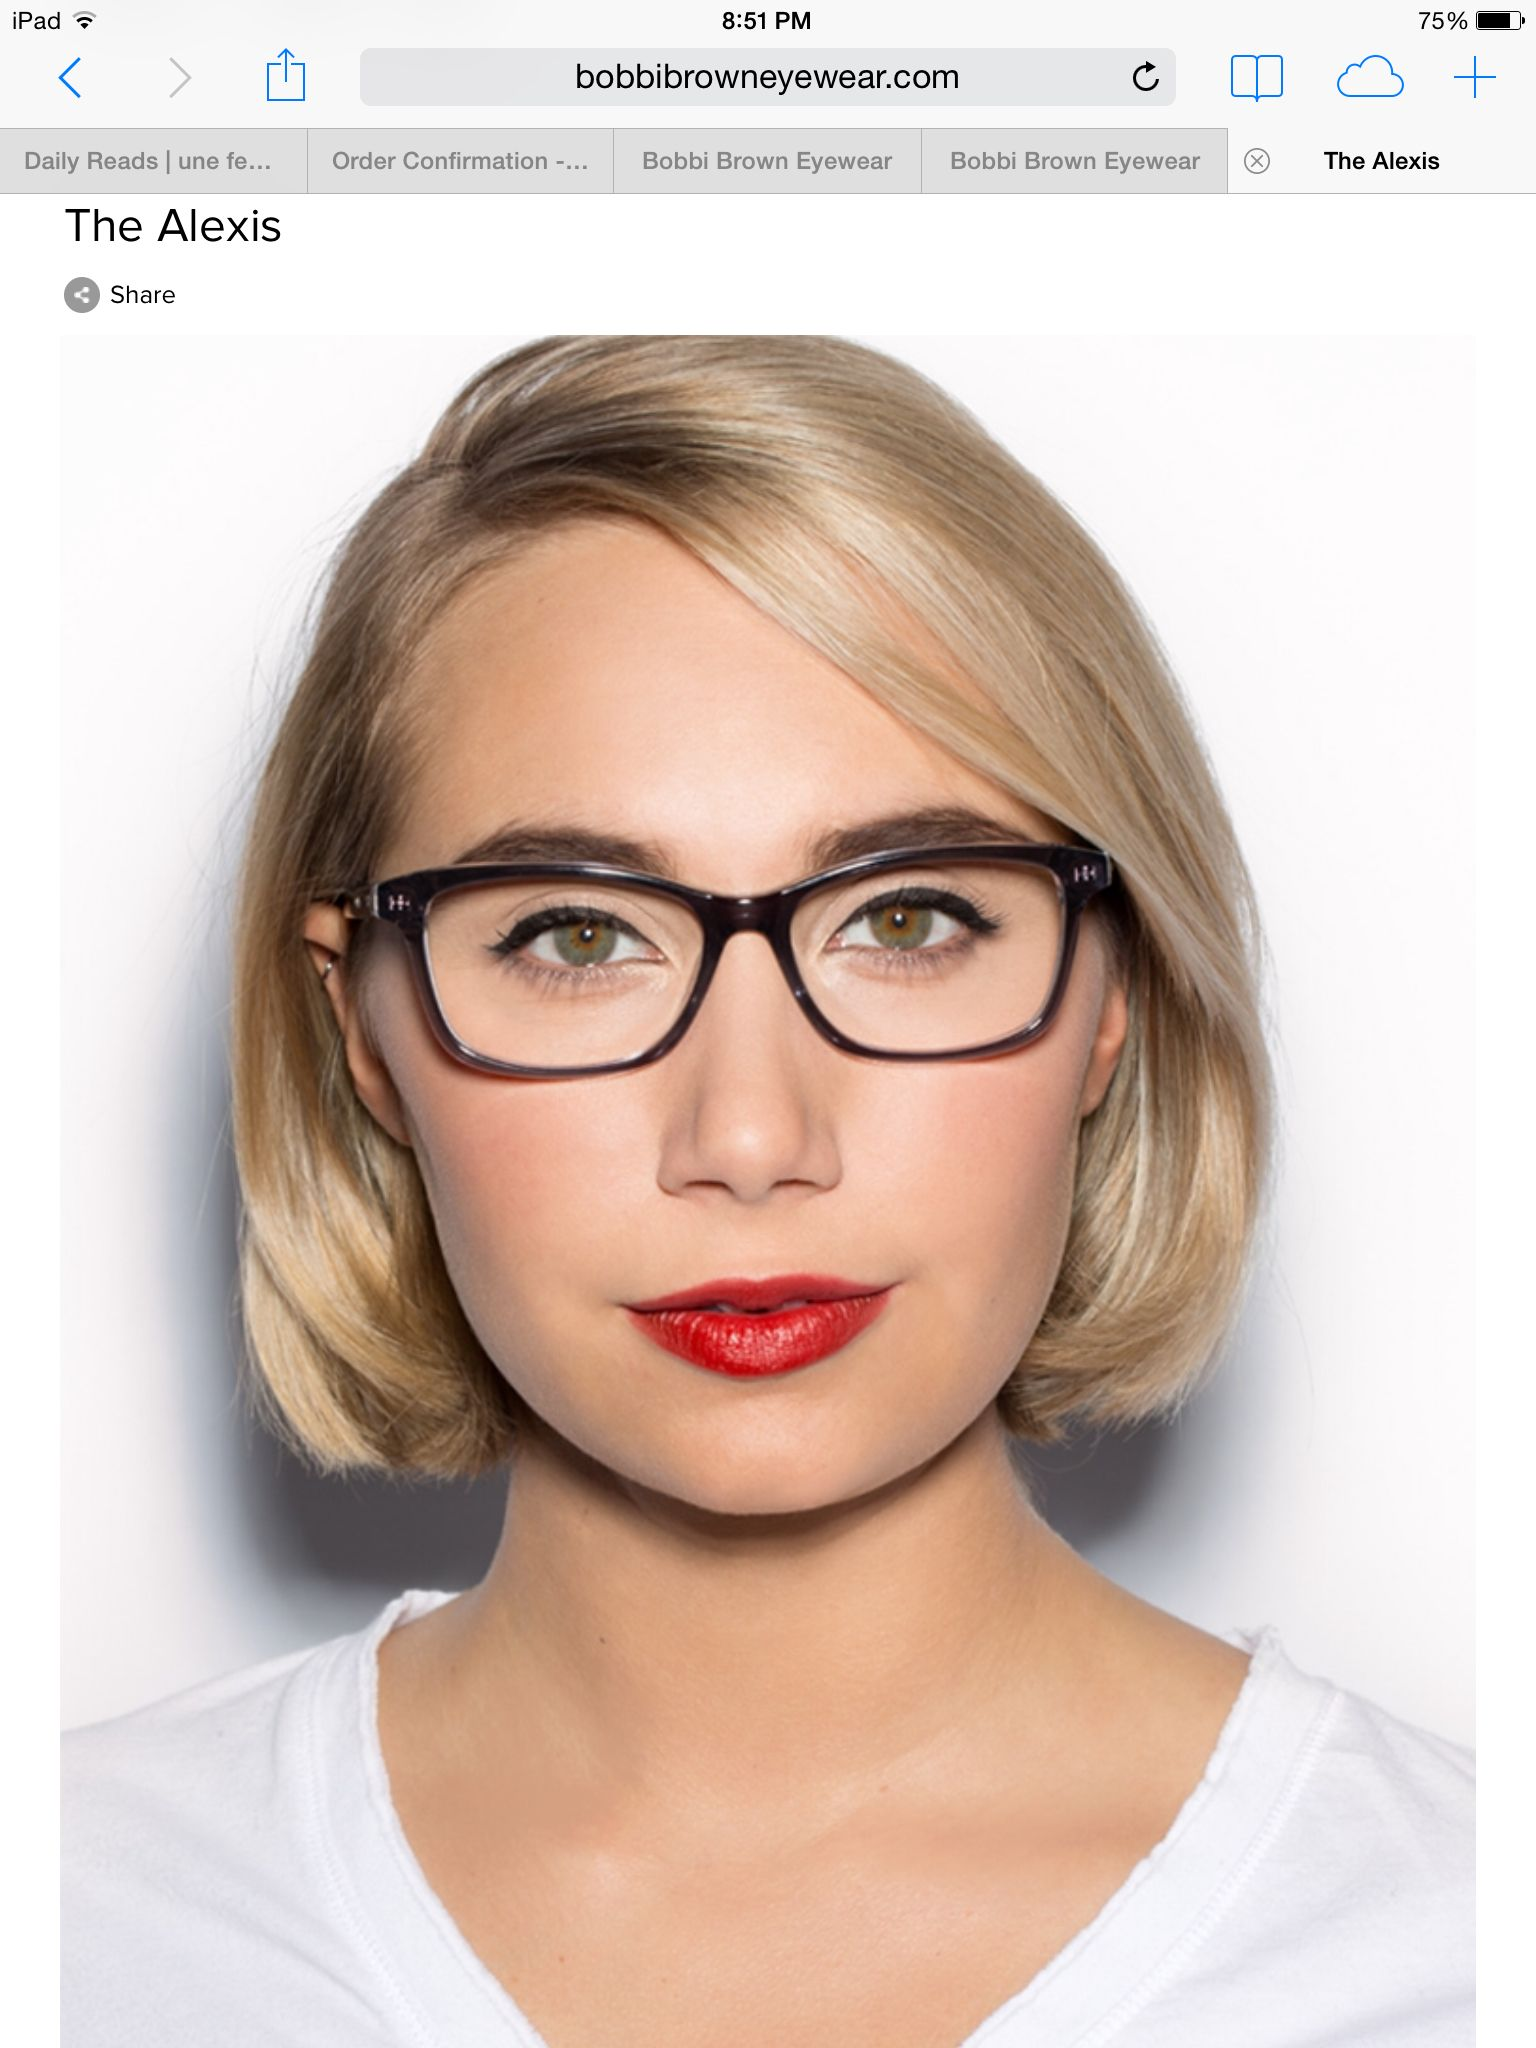 Bobbi Brown Eyewear How to wear makeup, Short hair styles